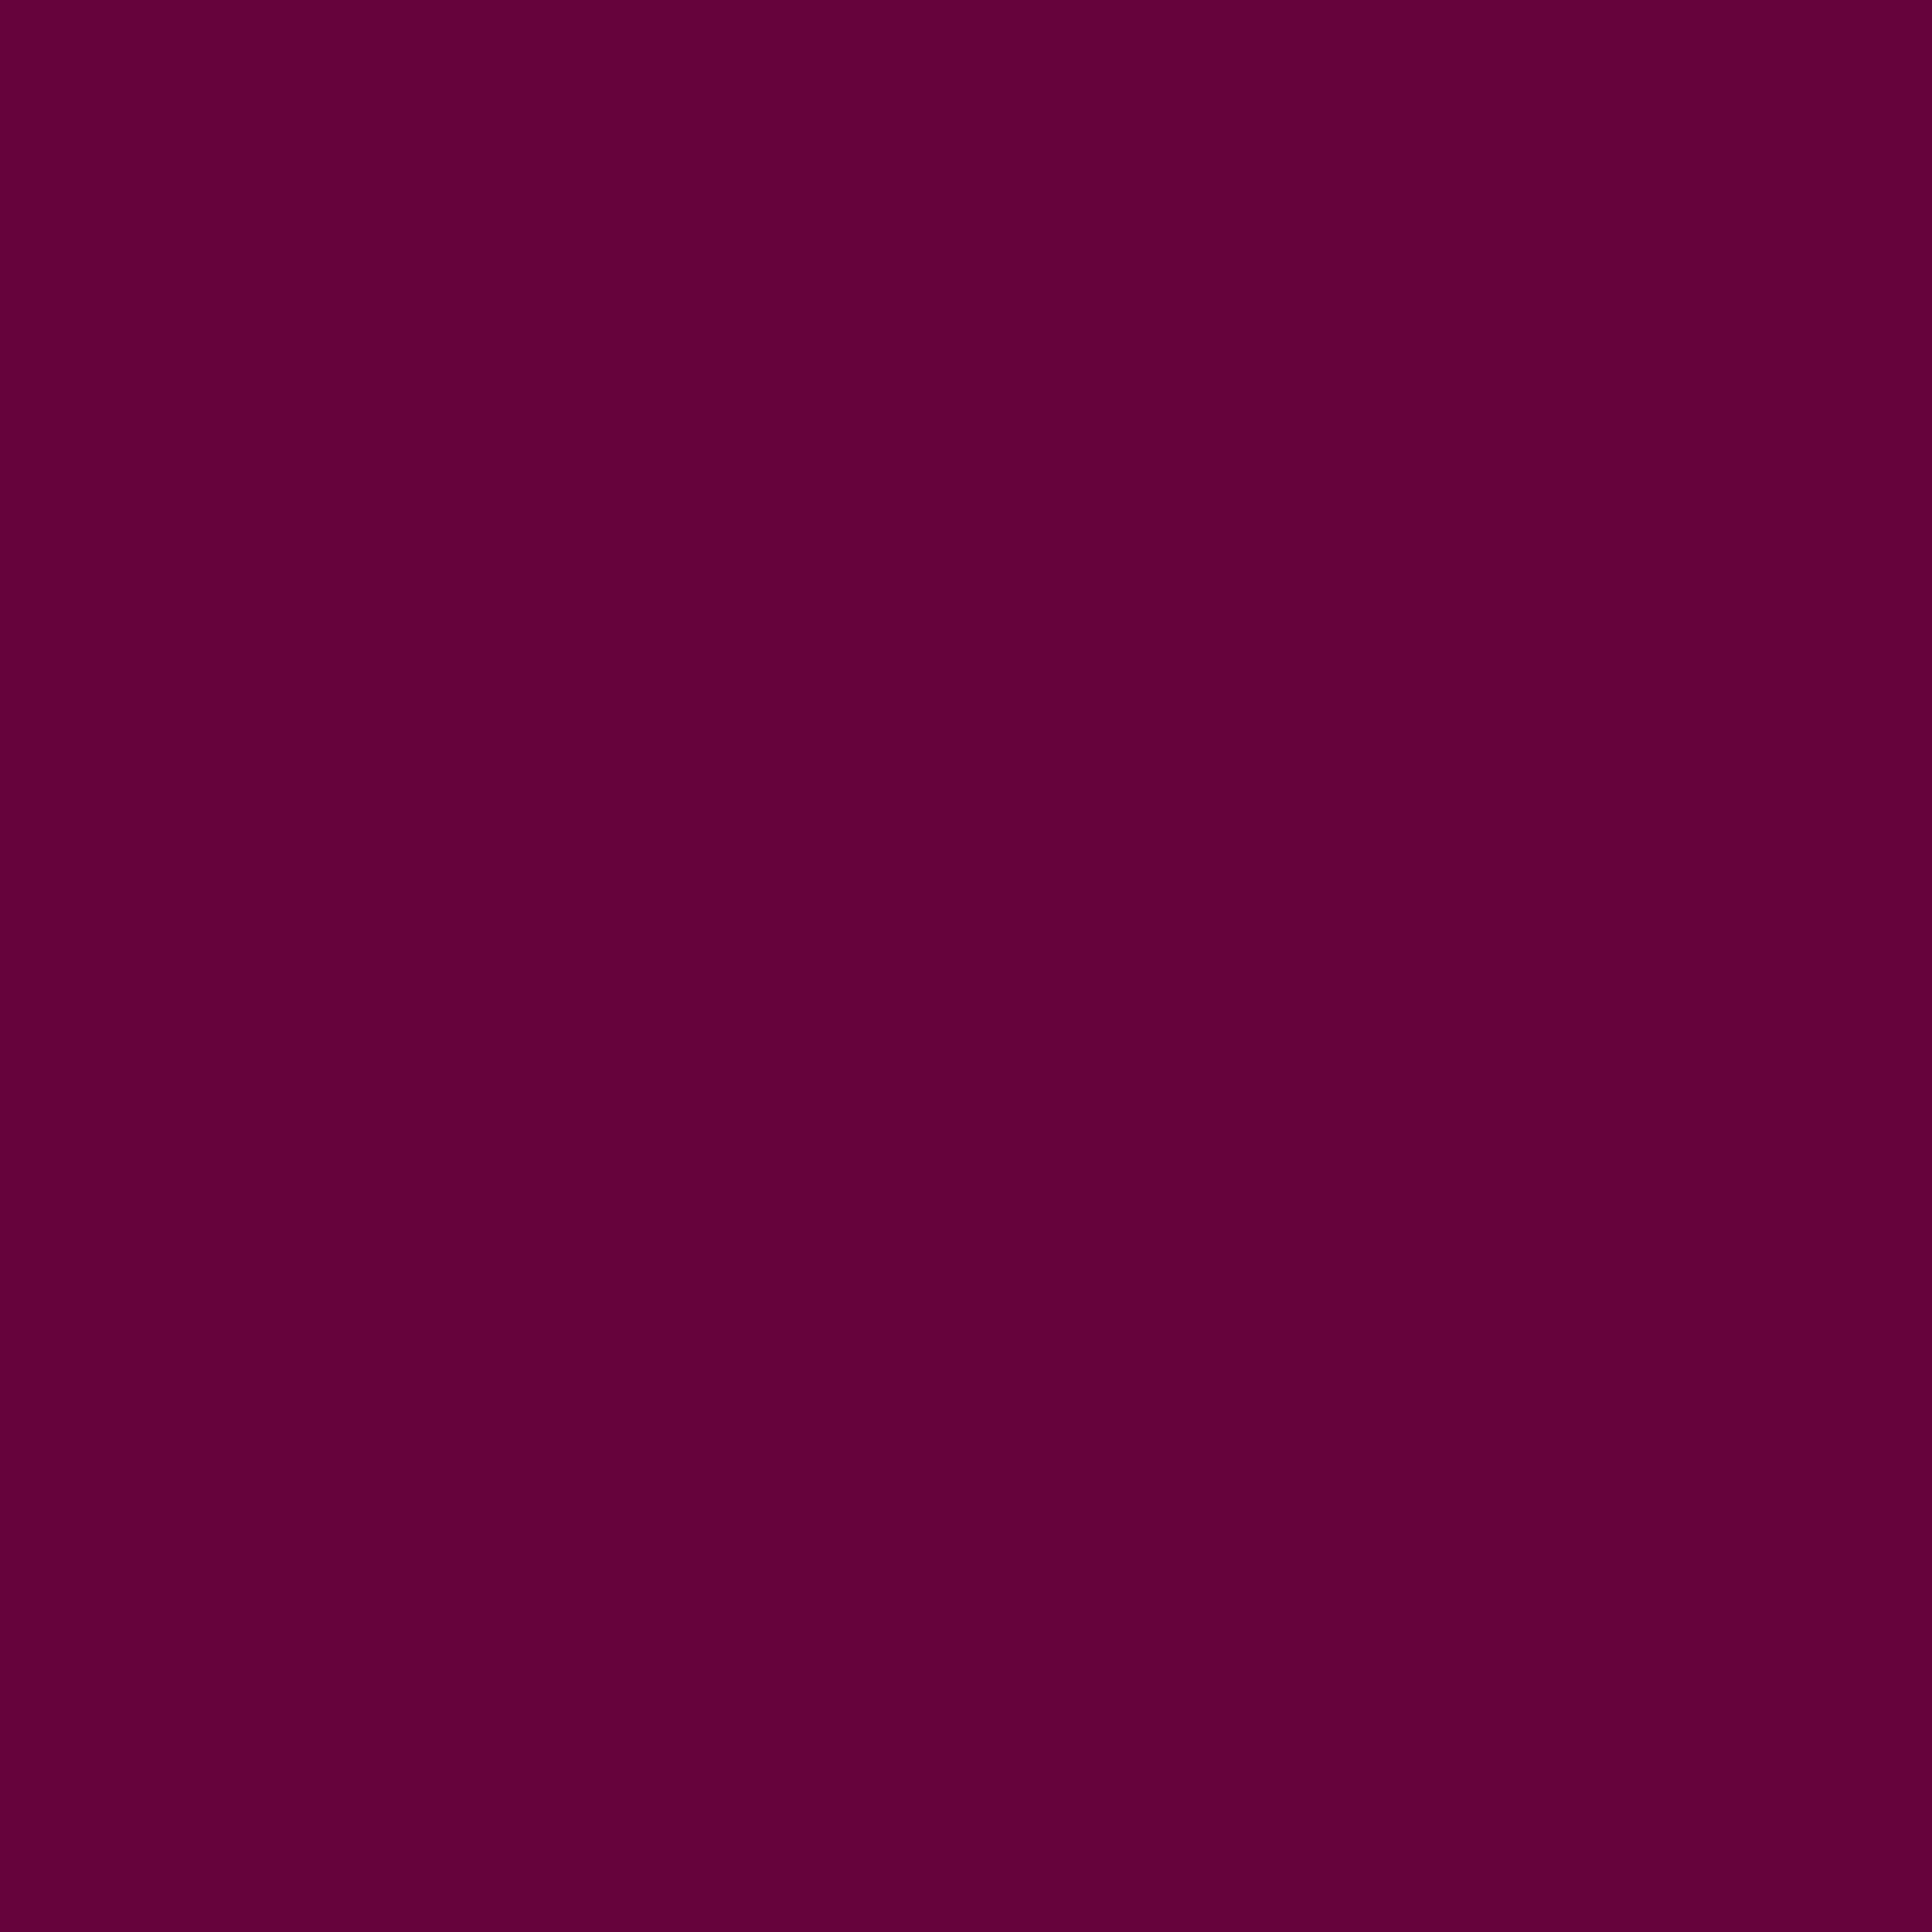 3600x3600 Tyrian Purple Solid Color Background